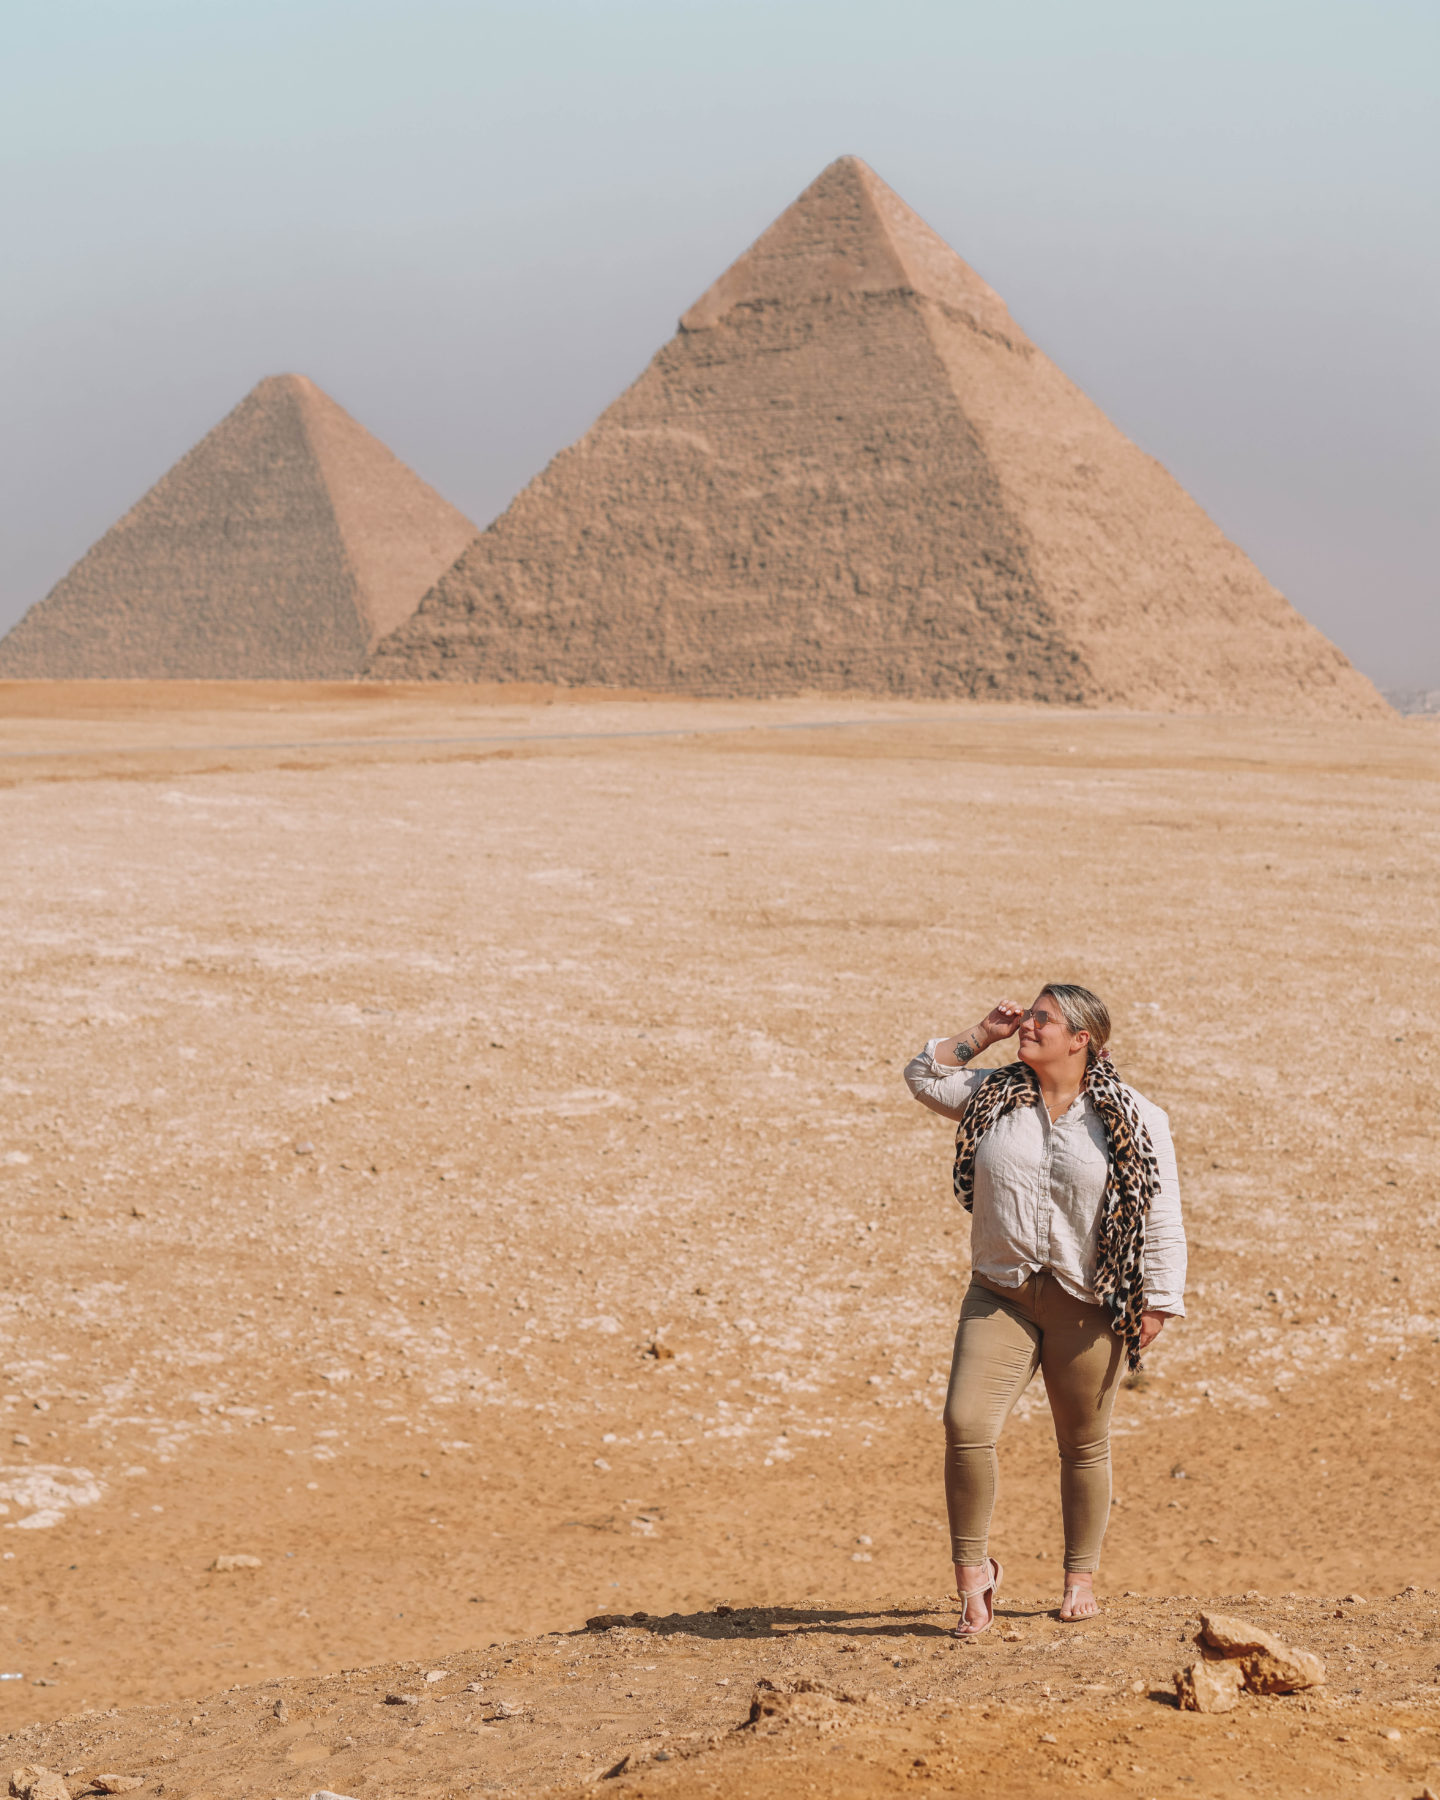 standing in front of great pyramids of giza | egypt itinerary